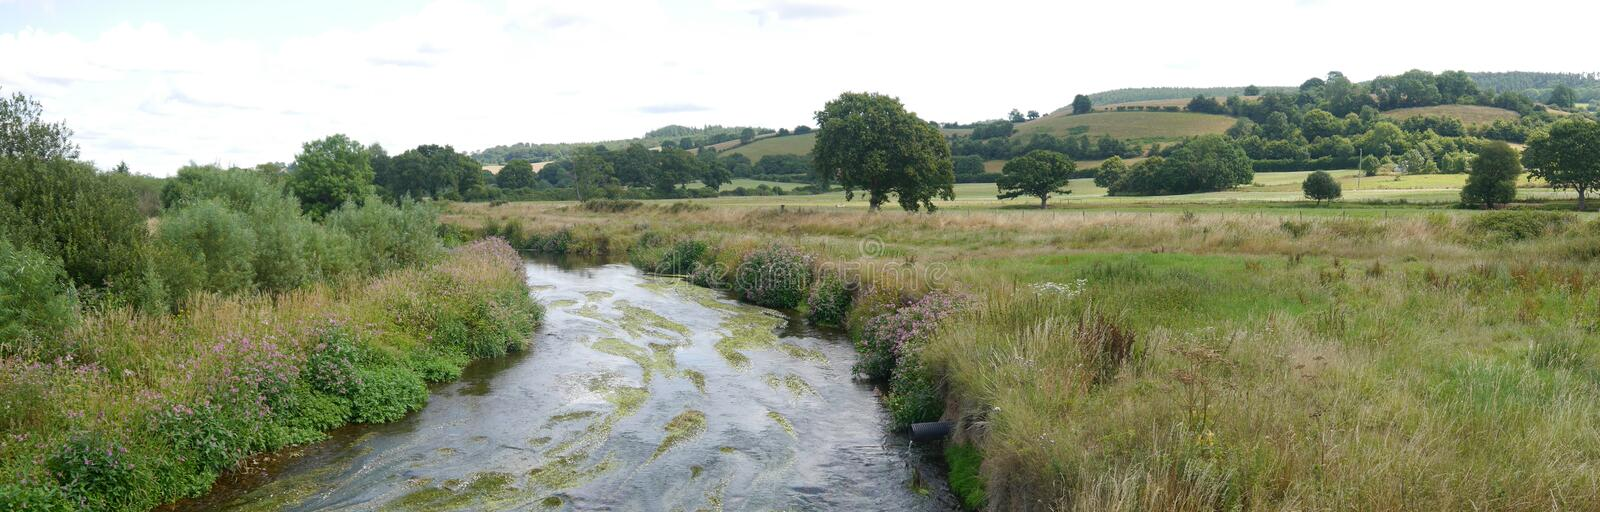 Panorama of a typical Devon scene in the English countryside in Summertime royalty free stock photo